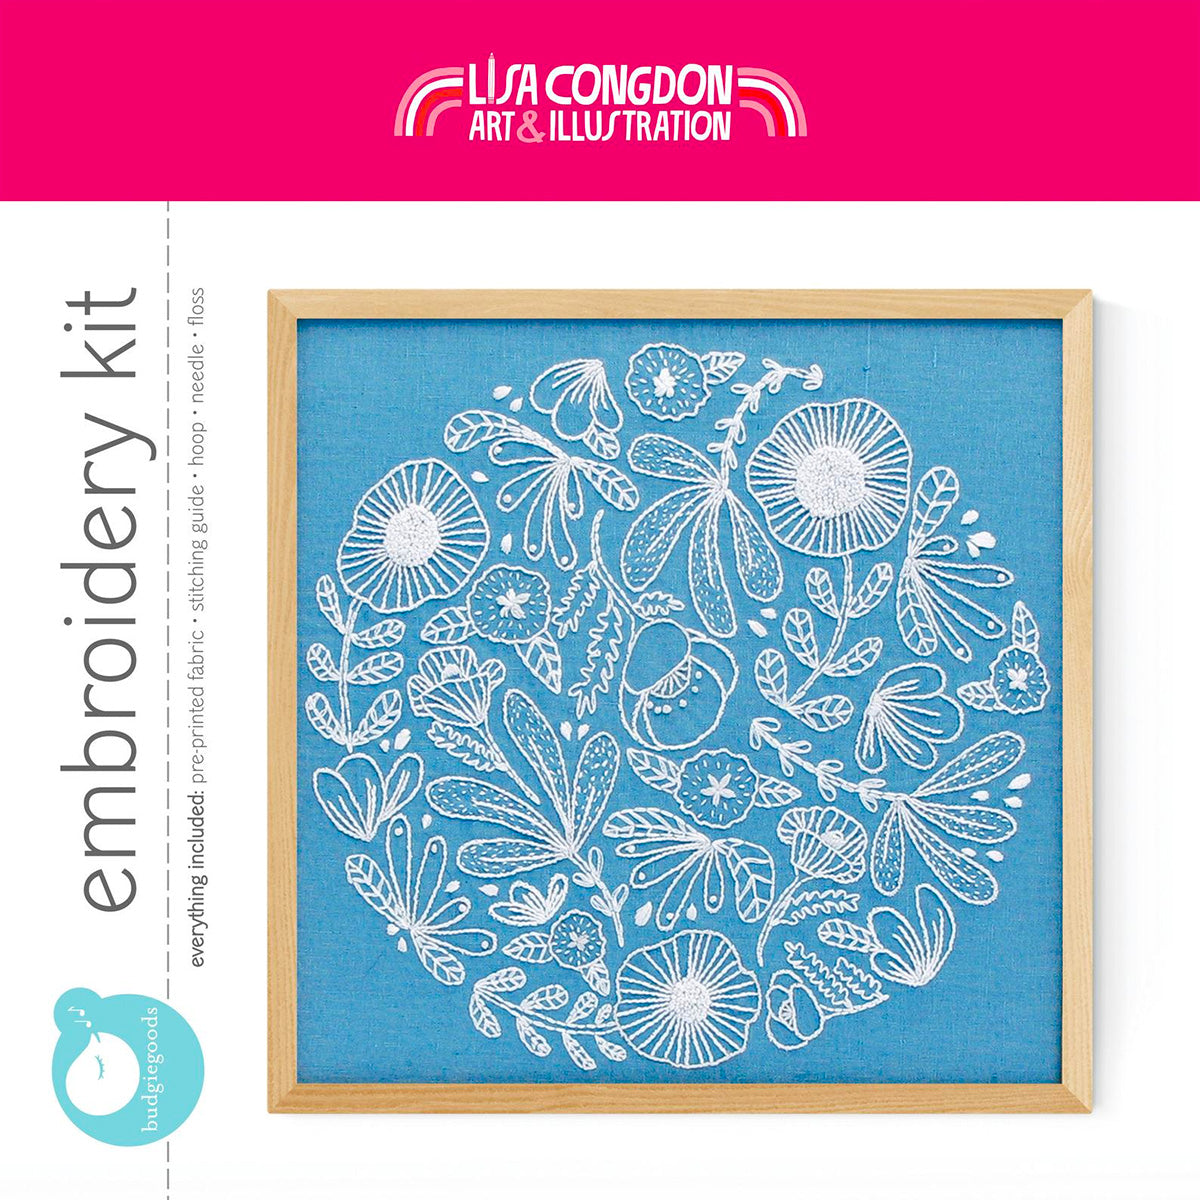 Lisa Congdon Hand Embroidery Kit - Poppy Patch